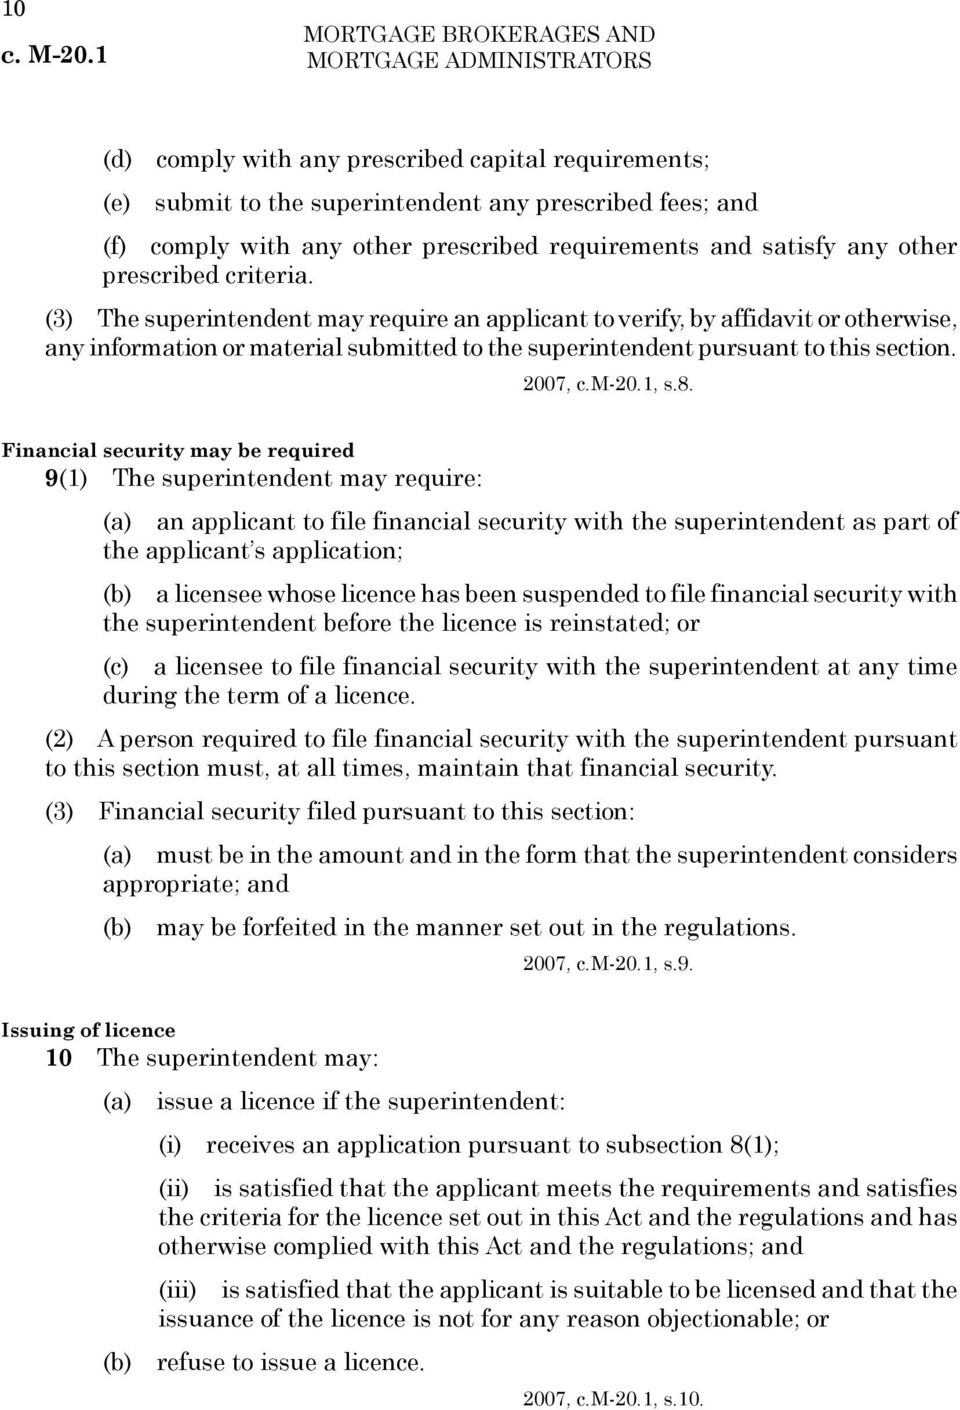 (3) The superintendent may require an applicant to verify, by affidavit or otherwise, any information or material submitted to the superintendent pursuant to this section. 2007, c.m-20.1, s.8.